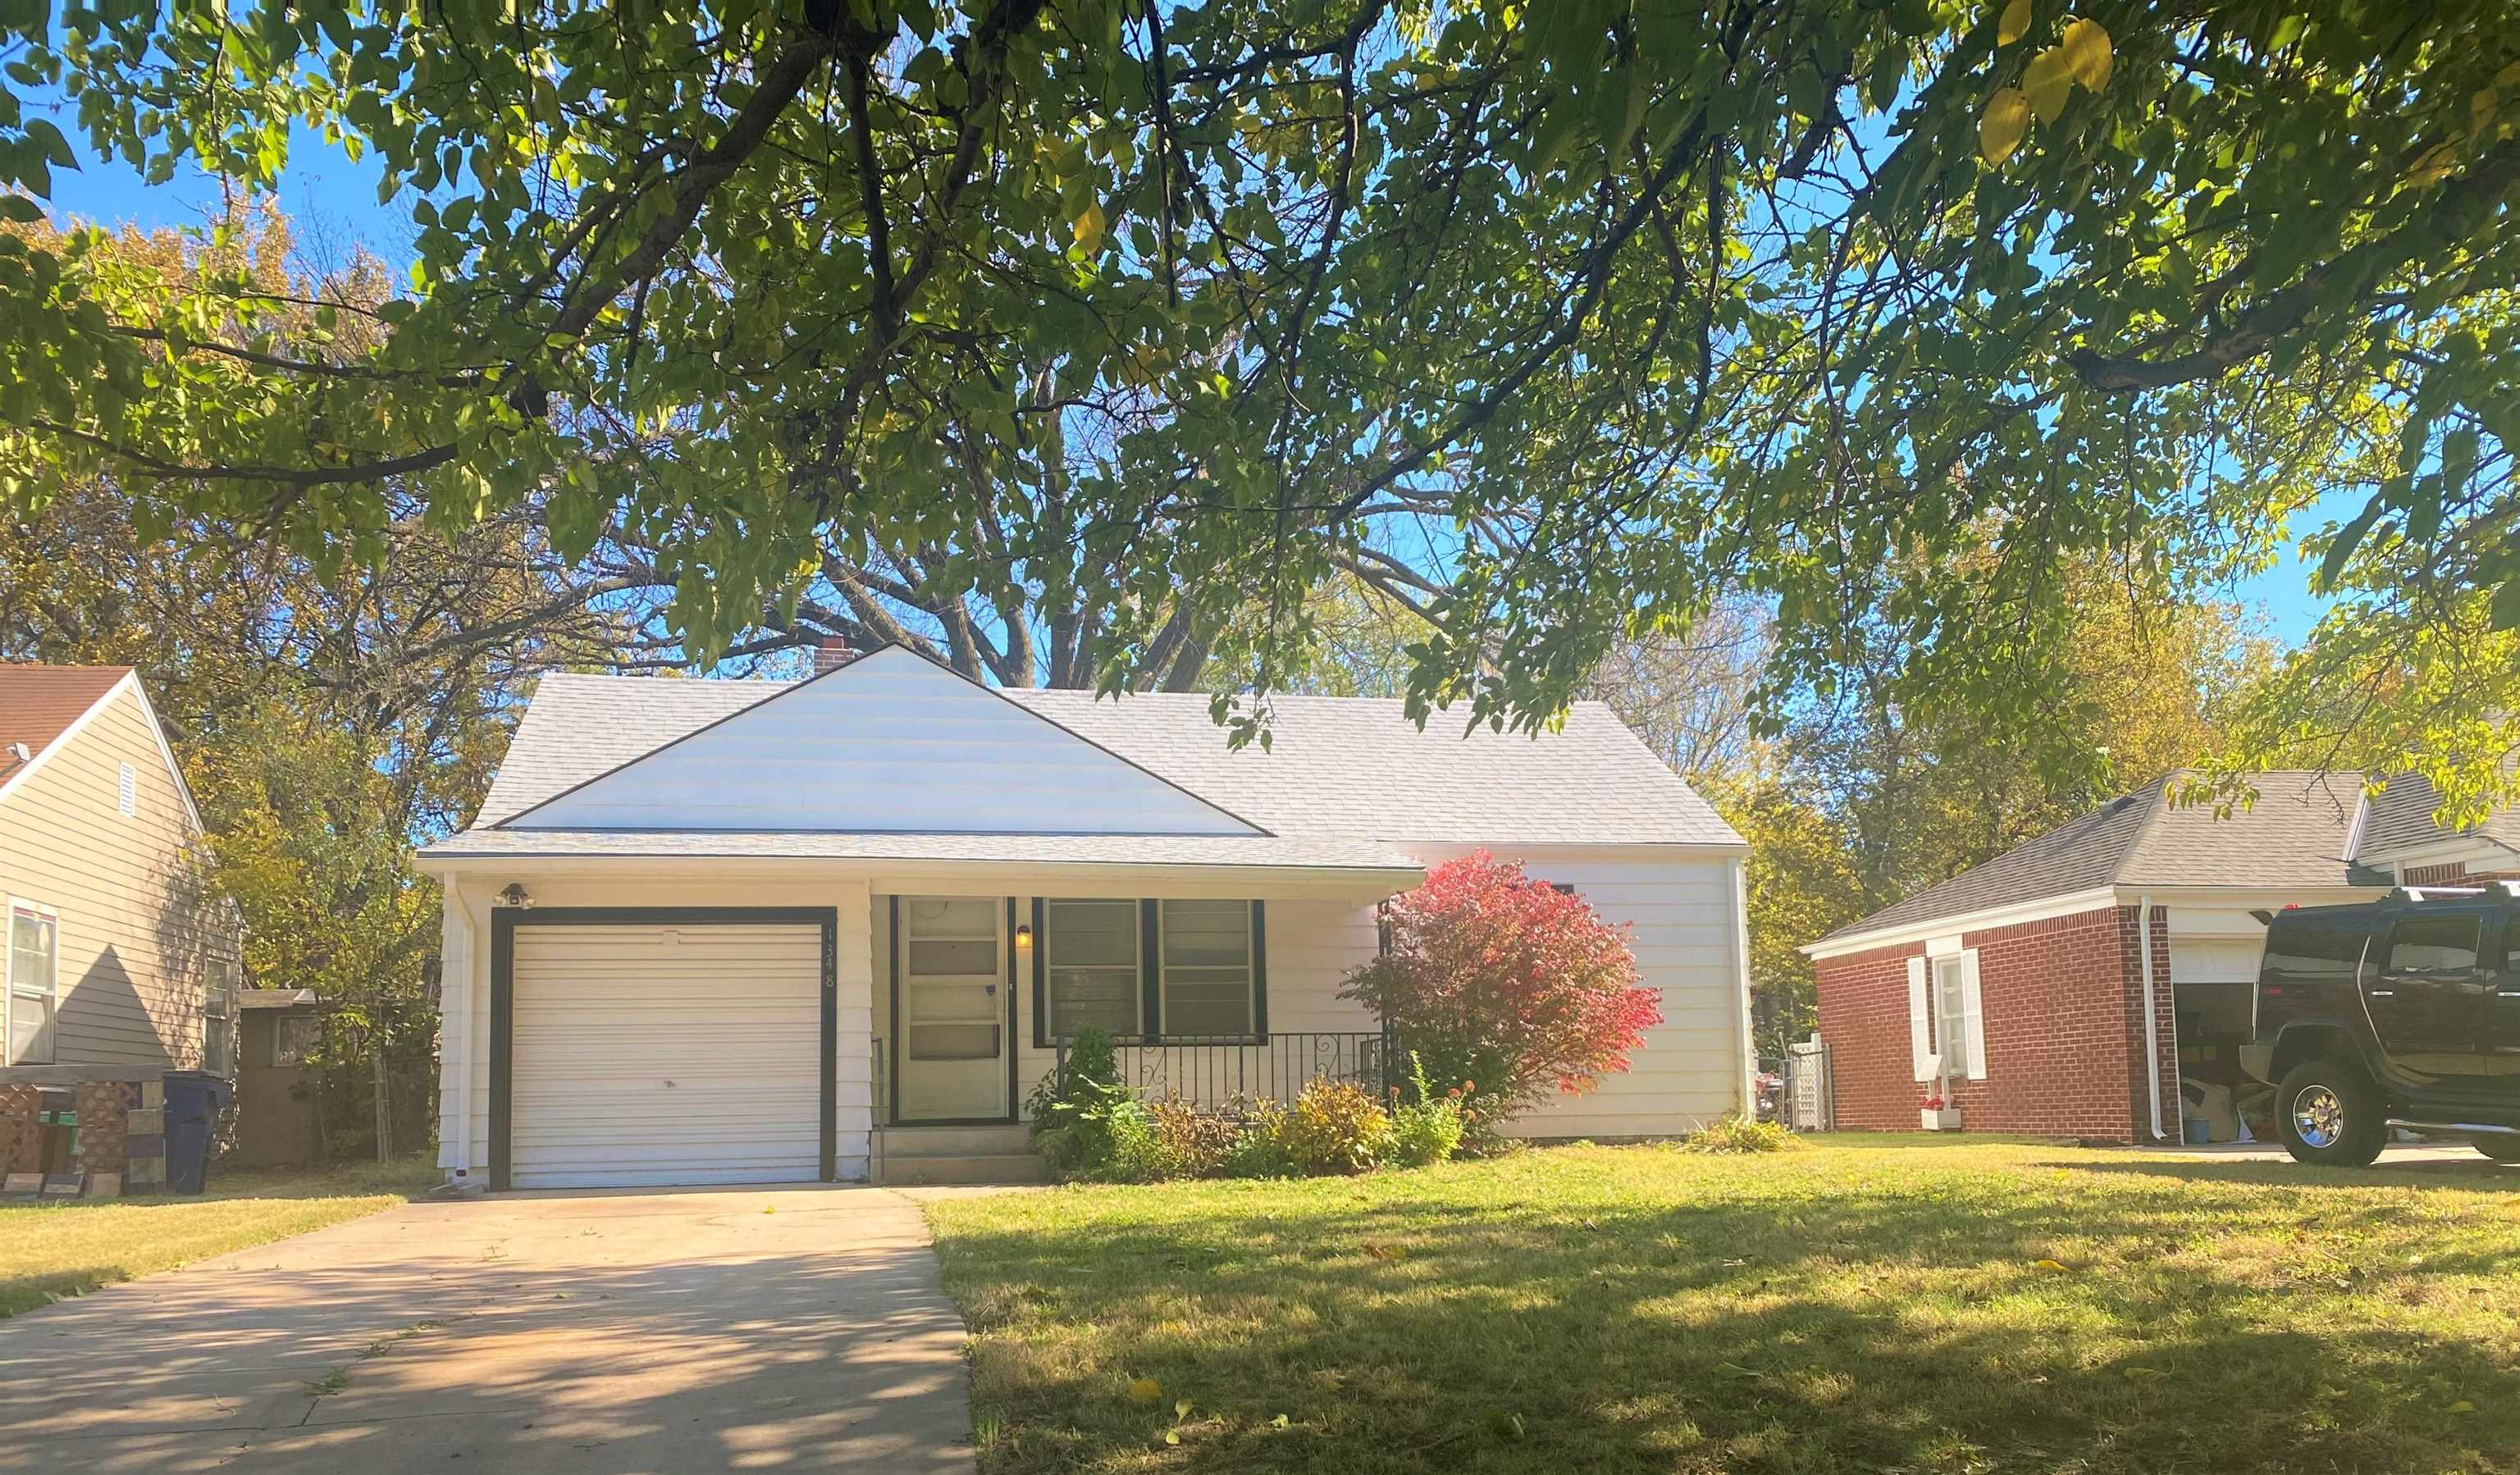 A great investment property or smaller home to give some TLC! 2 bedrooms on the main level, one bath